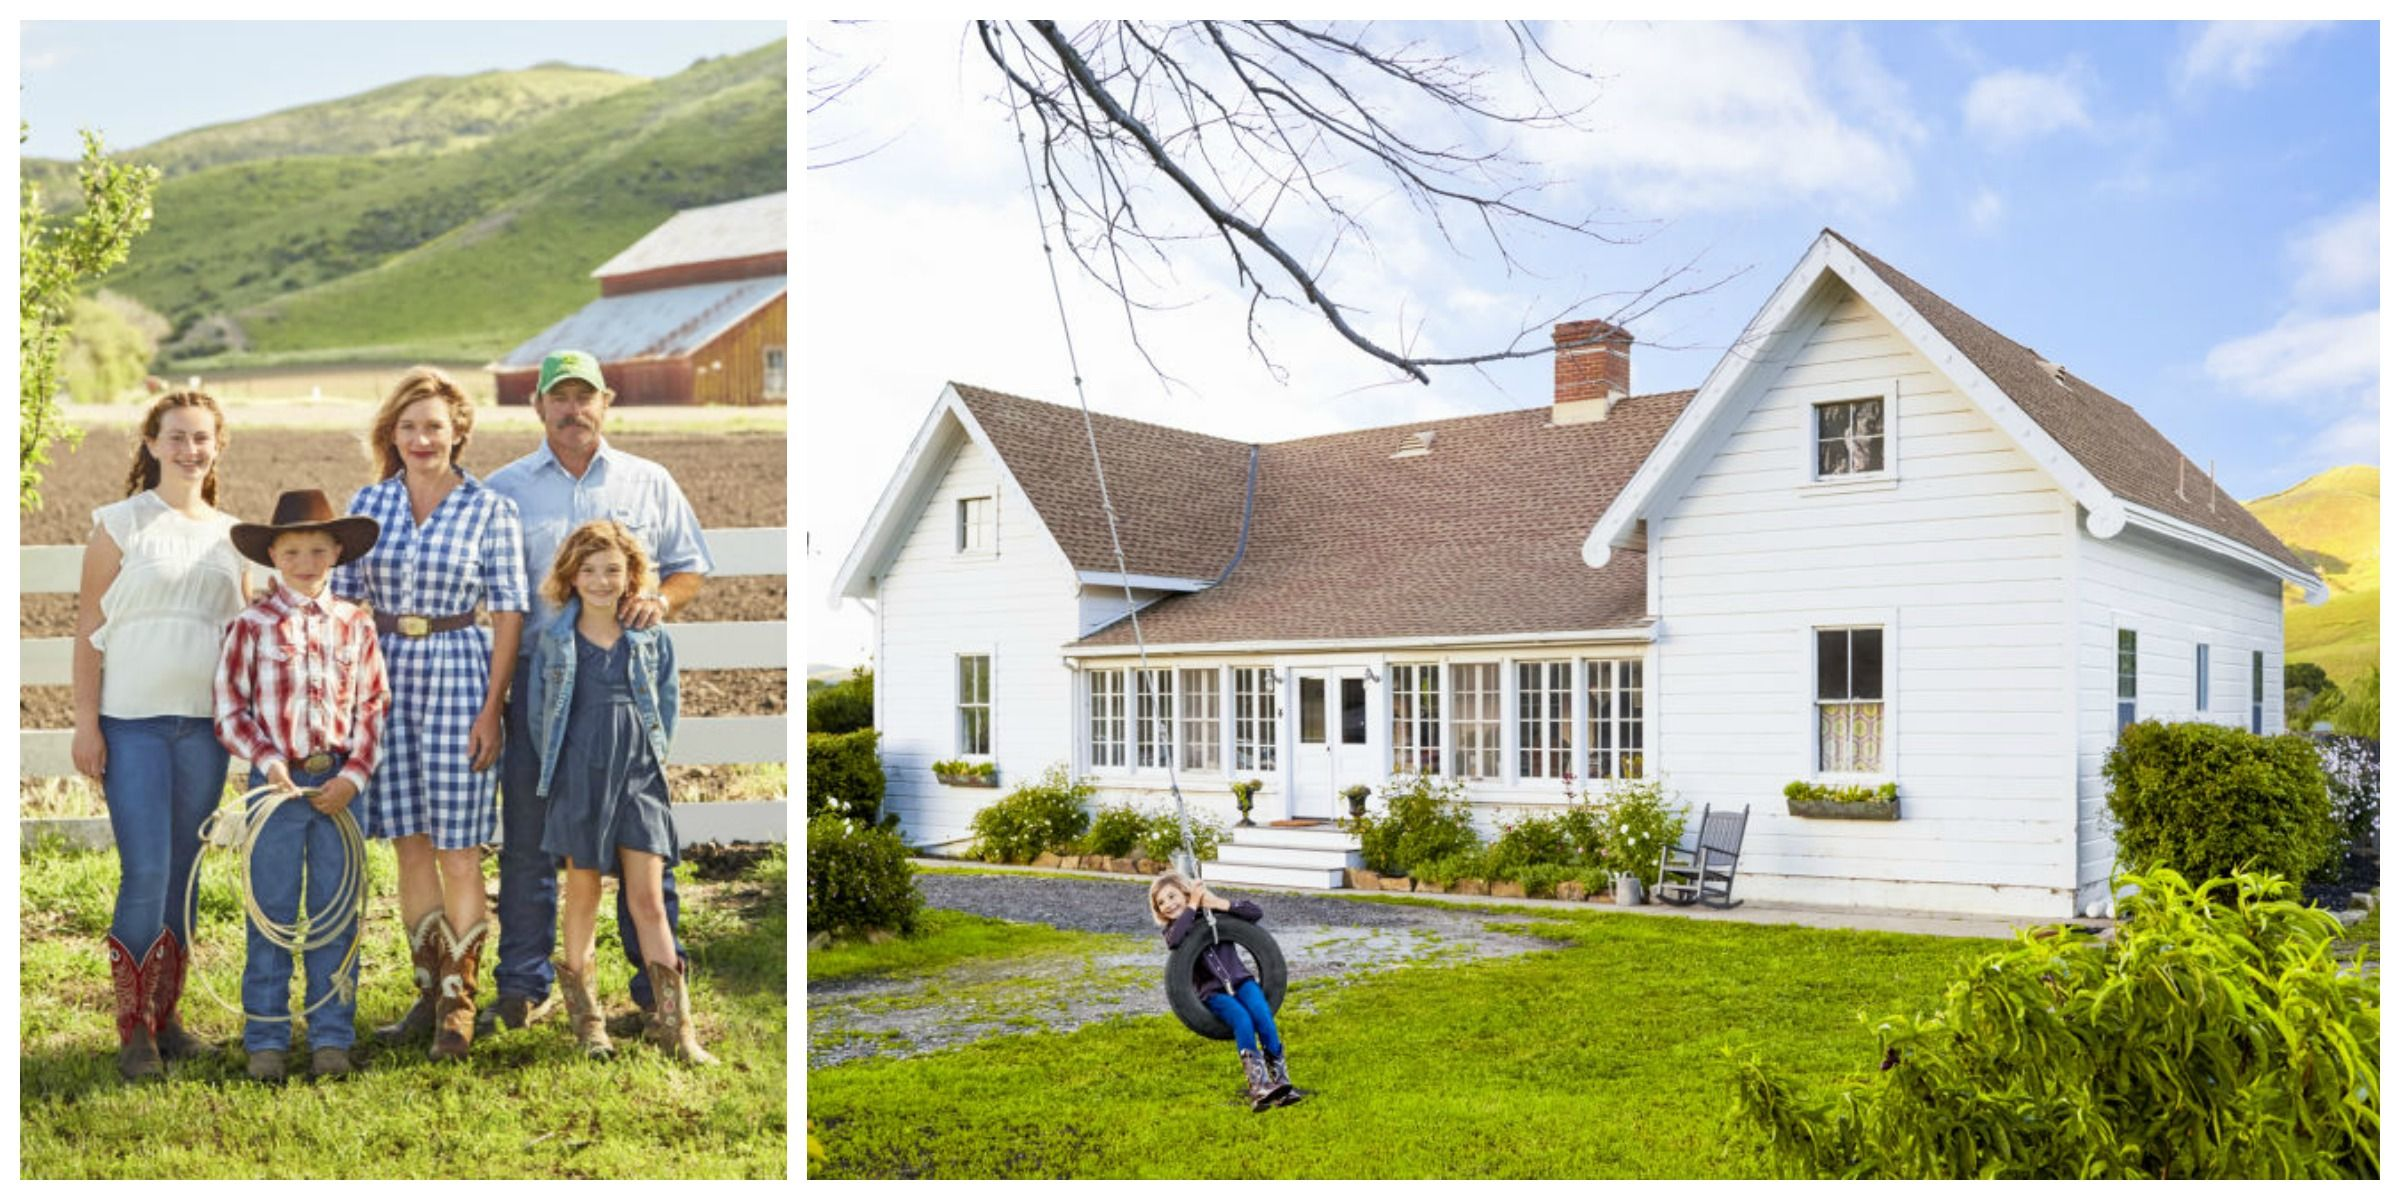 16 vintage decorating ideas from inside a 19th century california farmhouse